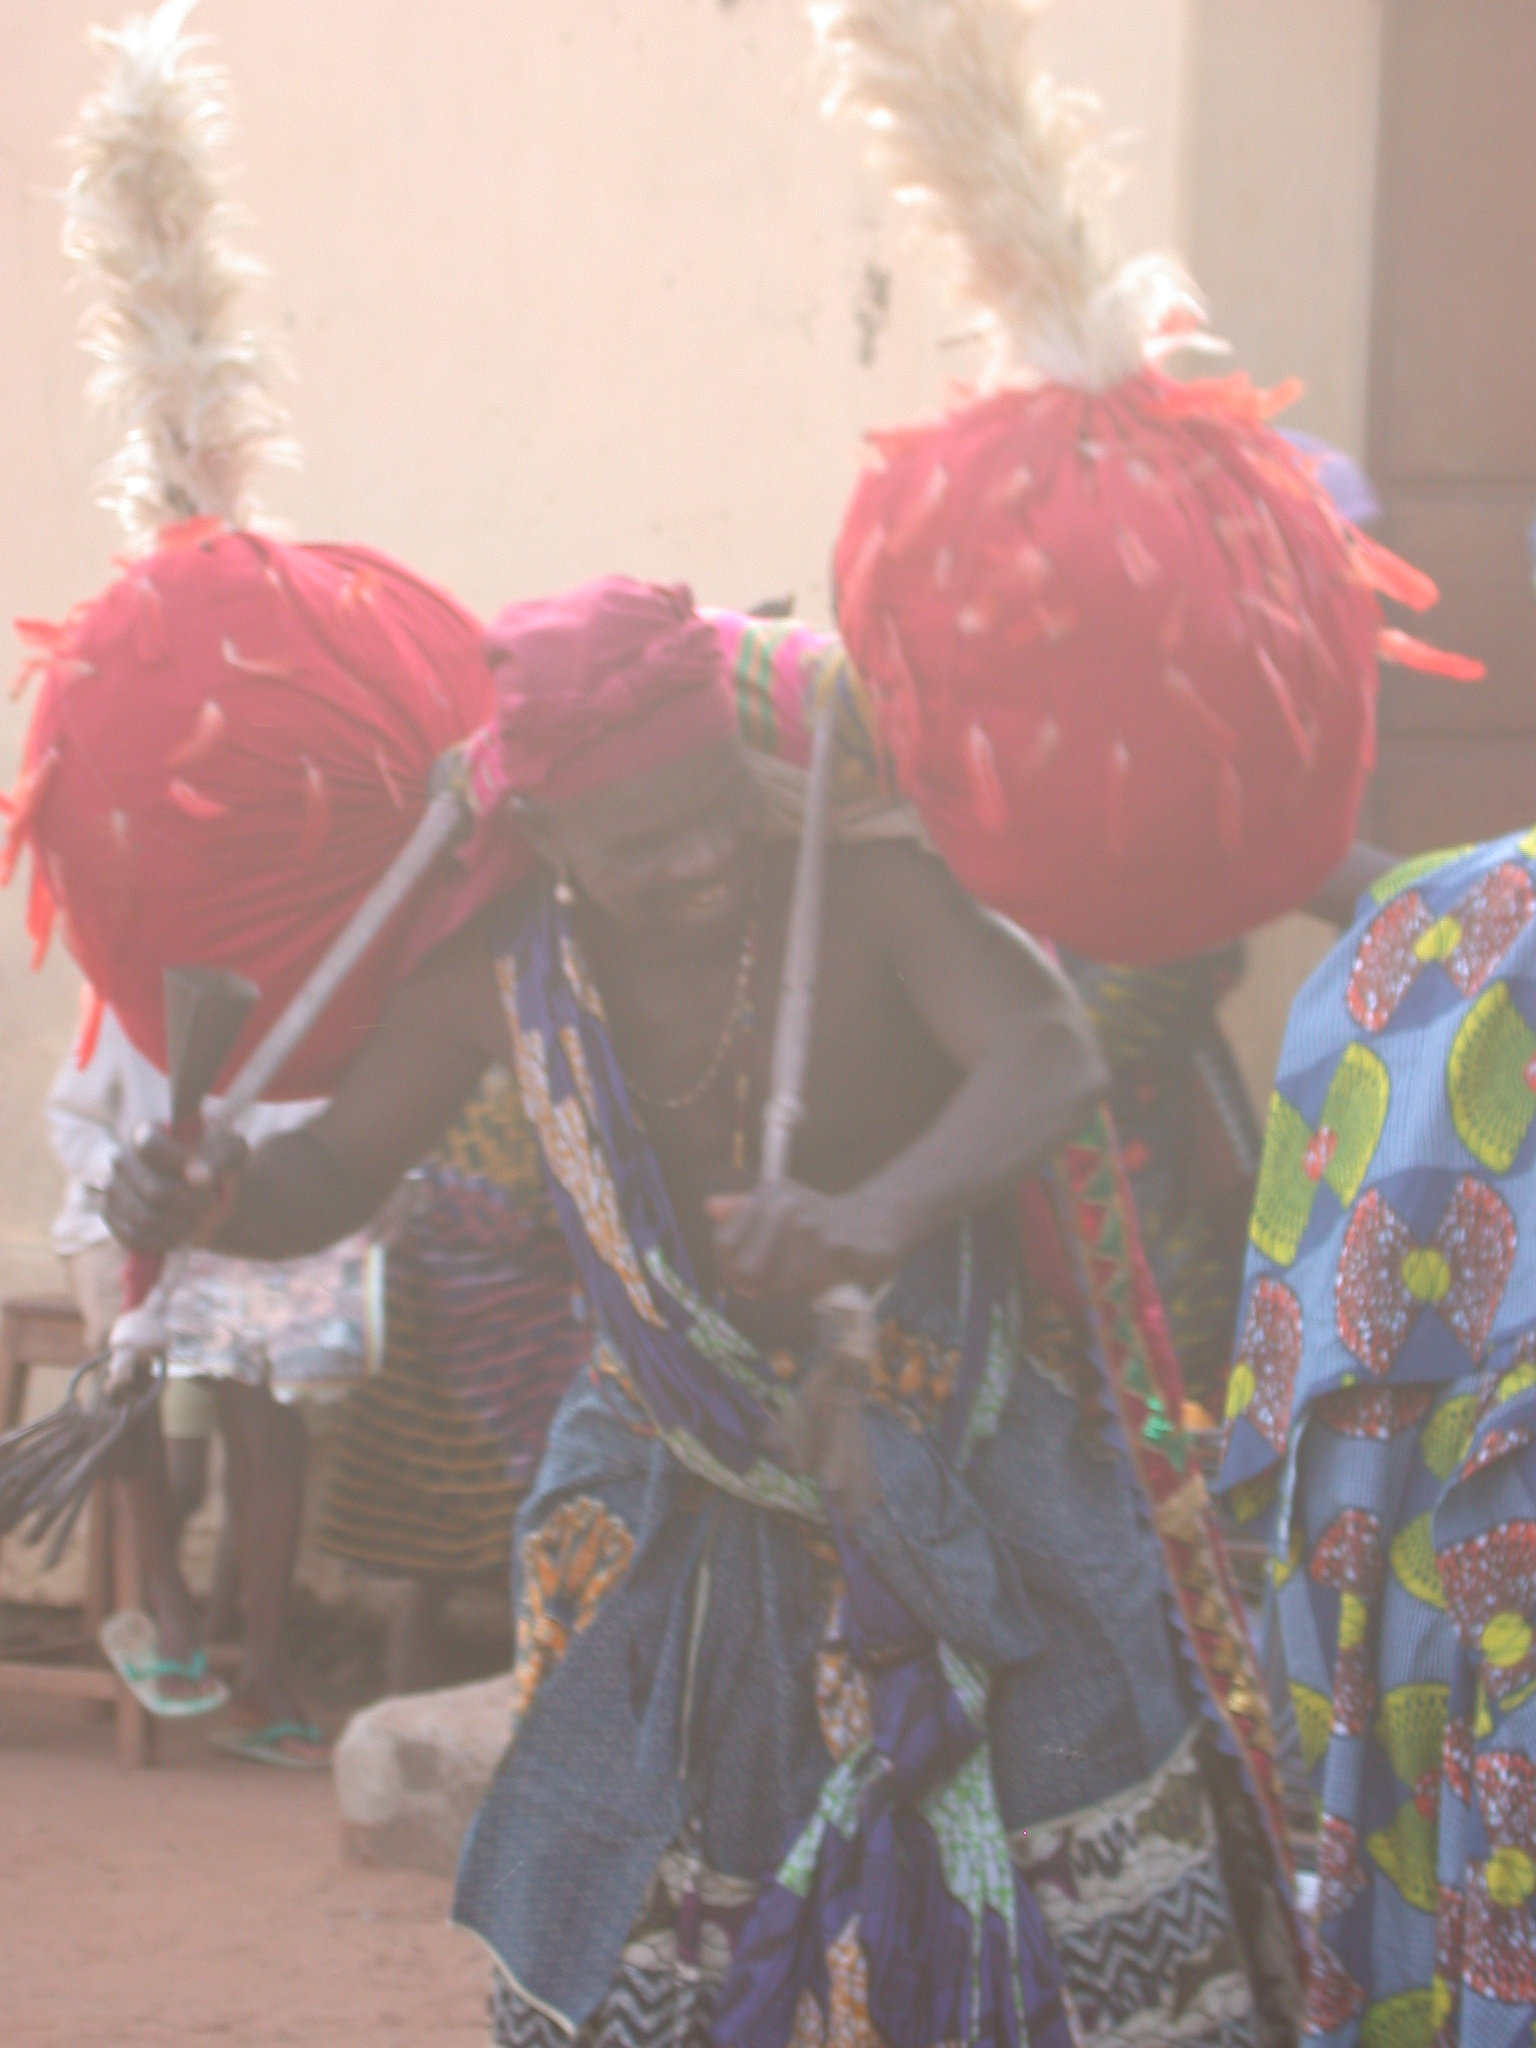 Dancer With Red Pompom-Like Decorations, Vodun Ritual, Ouidah, Benin